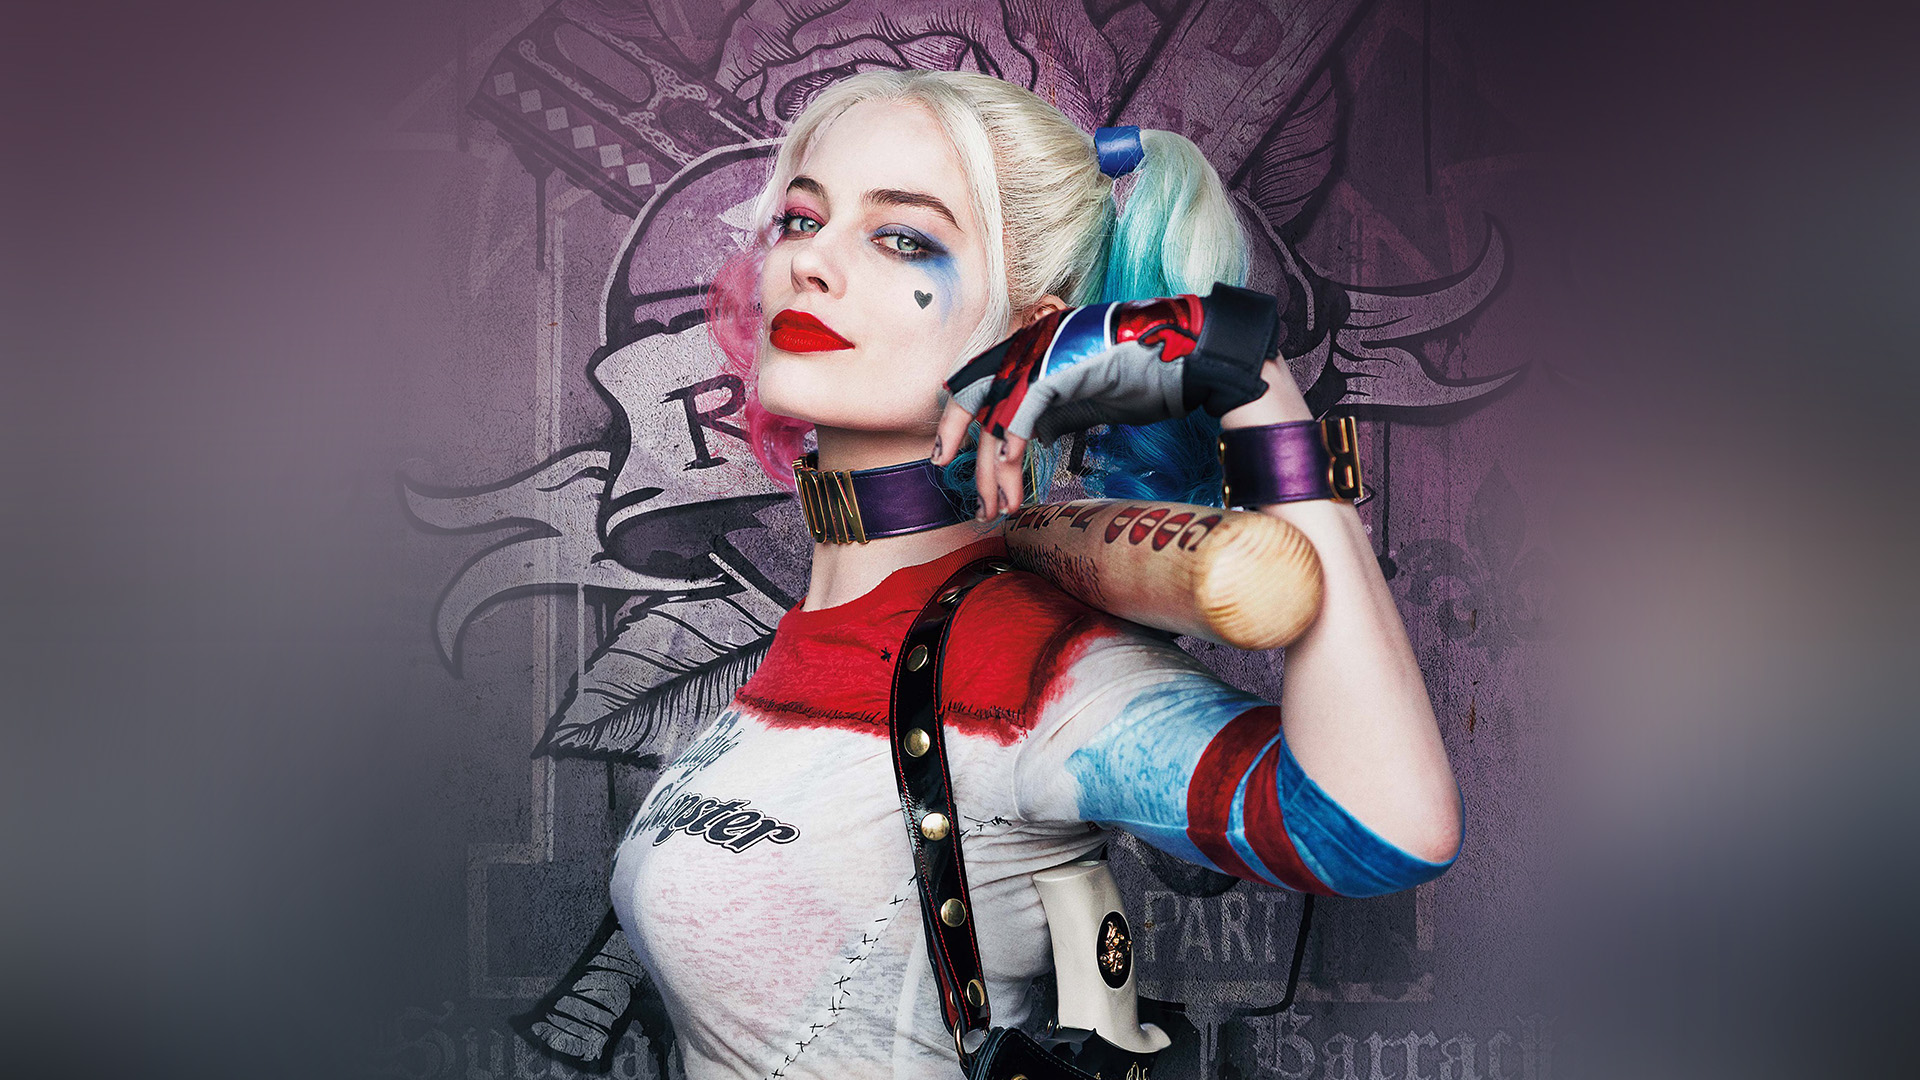 Fun Harley Quinn Fan Art further As34 Suicide Squad Poster Film Art Hall Harley Quinn as well File Jaclyn Smith Hot tub Gif 2 likewise Joker Harley Quinn Vs Deadpool Domino together with  on harlee model